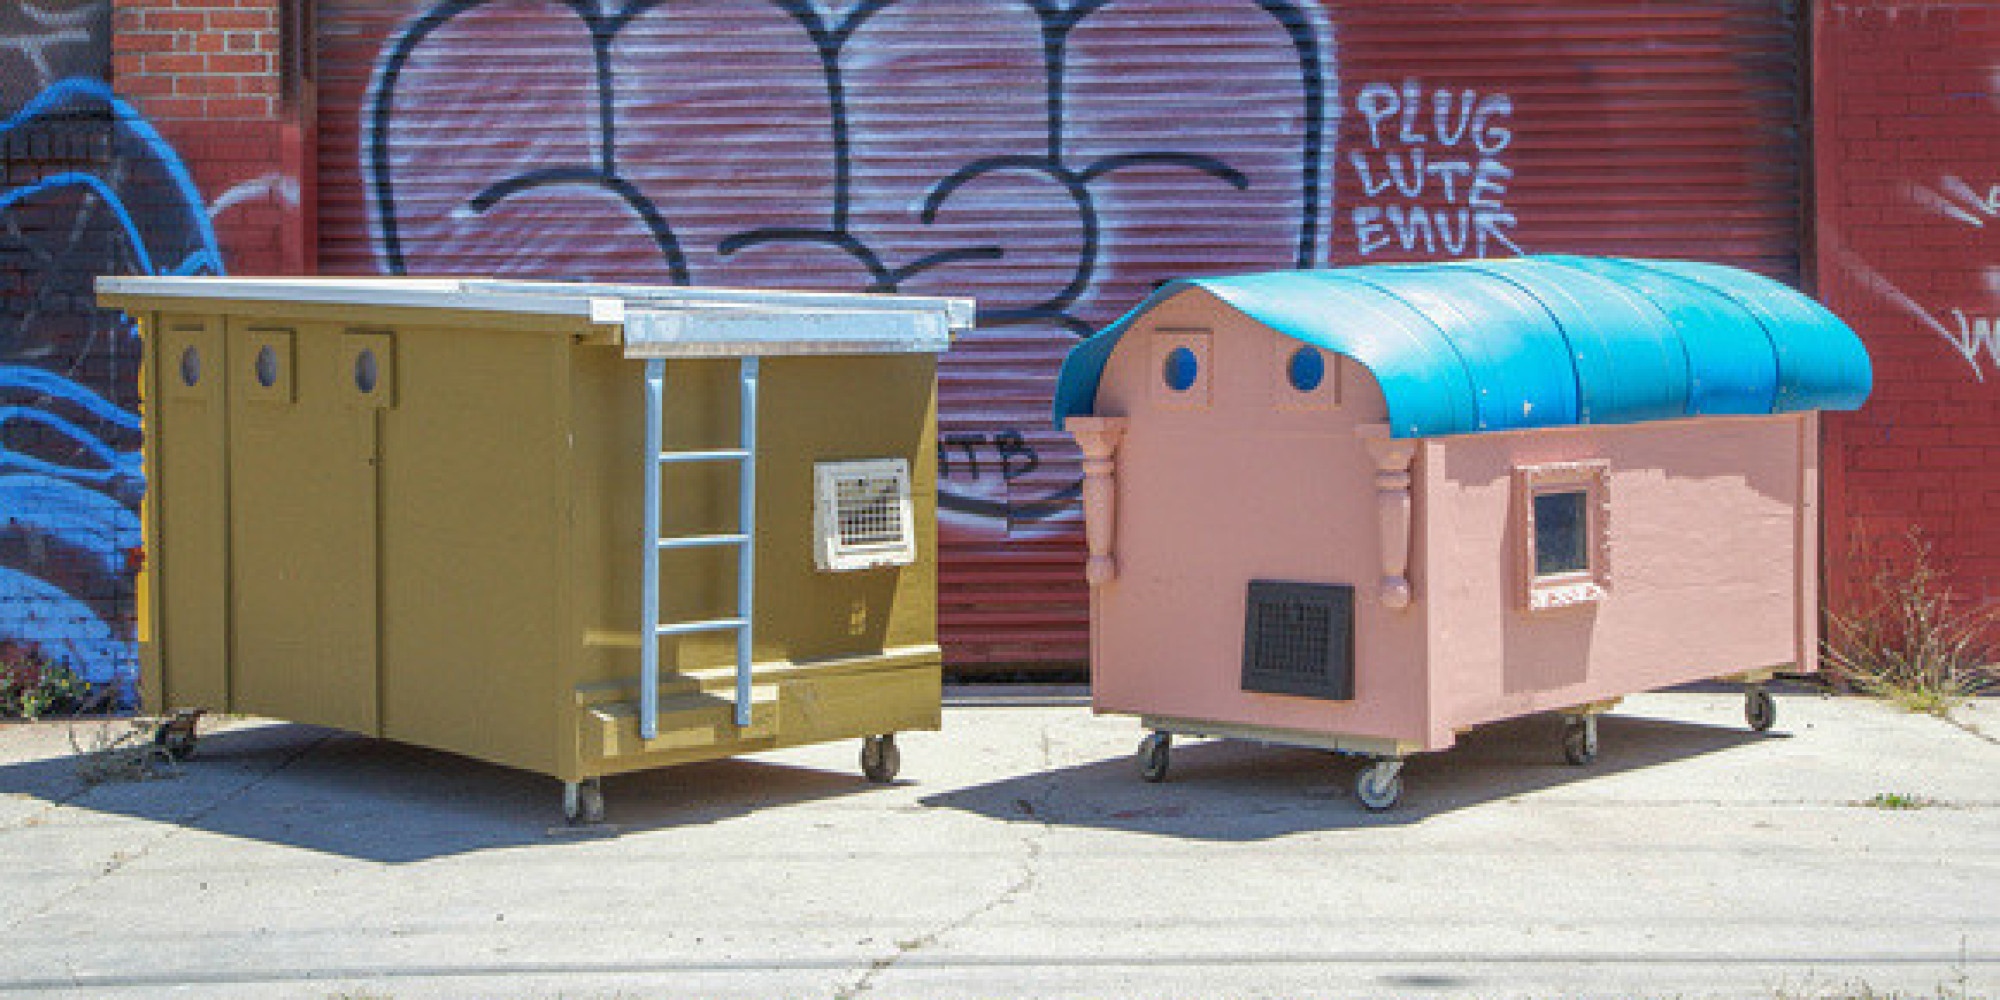 Artist Converts Trash Into Compact Mobile Homes For The Homeless